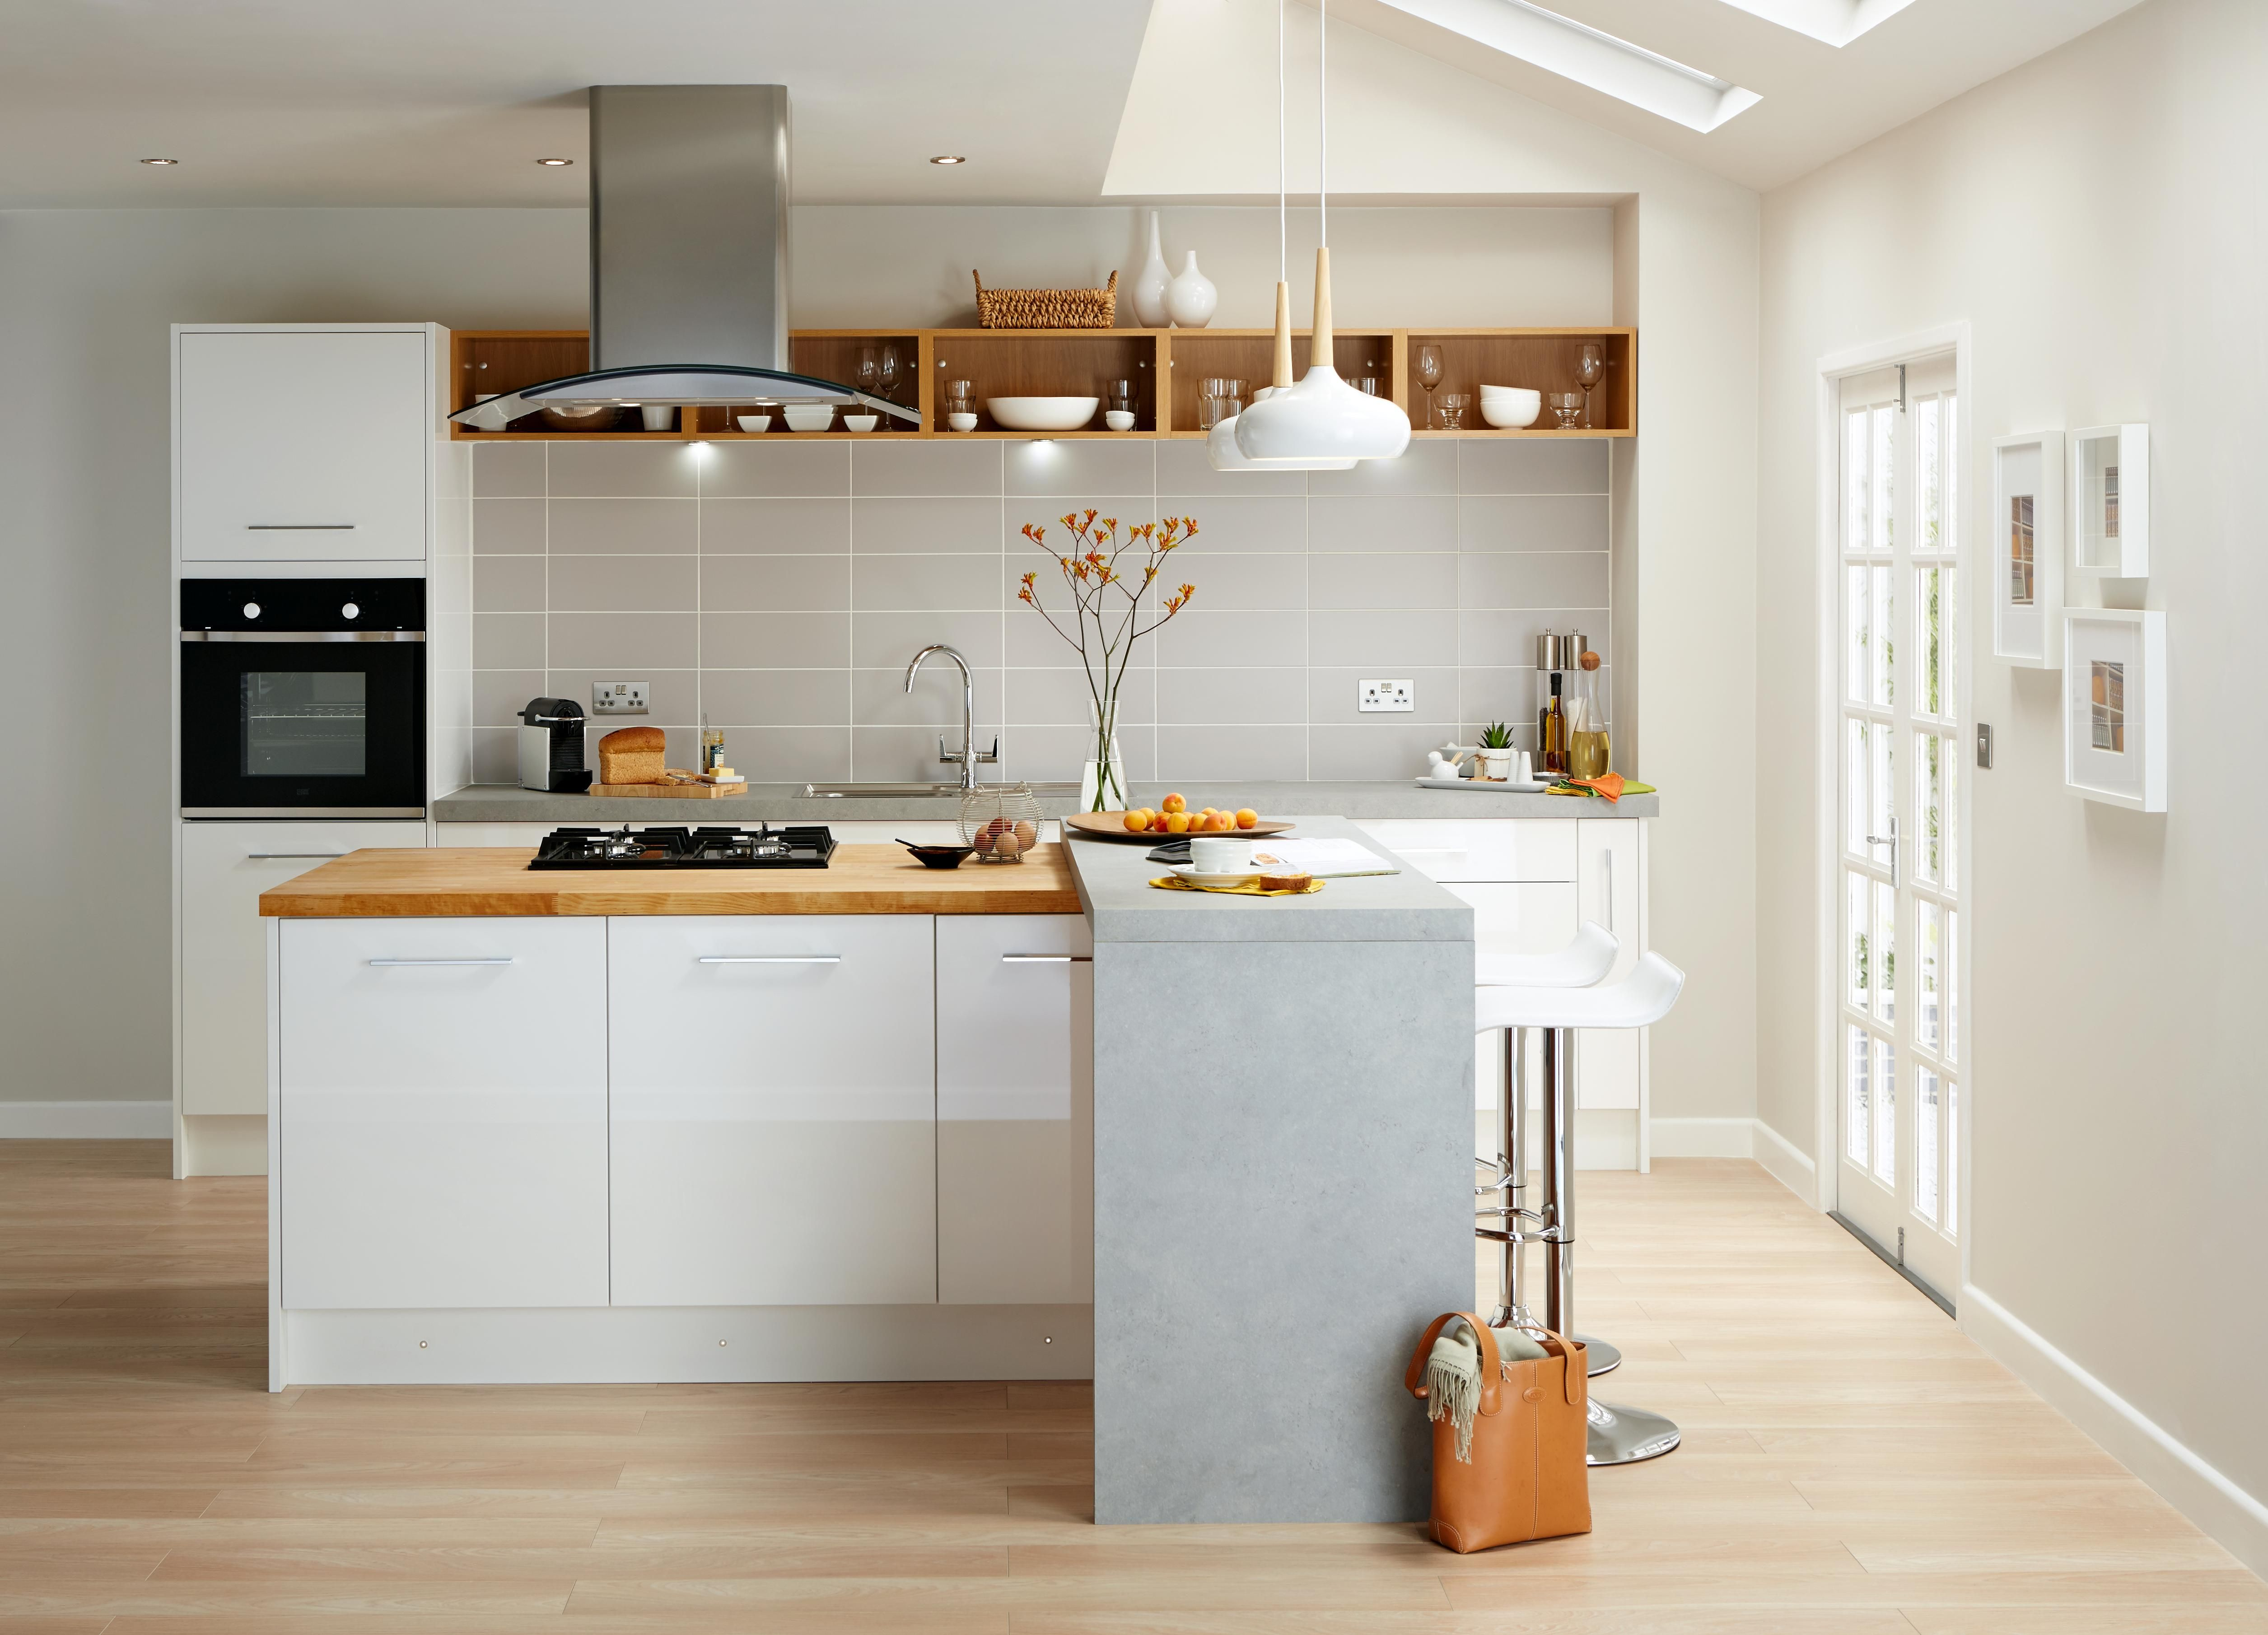 There's no denying it, white kitchens combined with wood